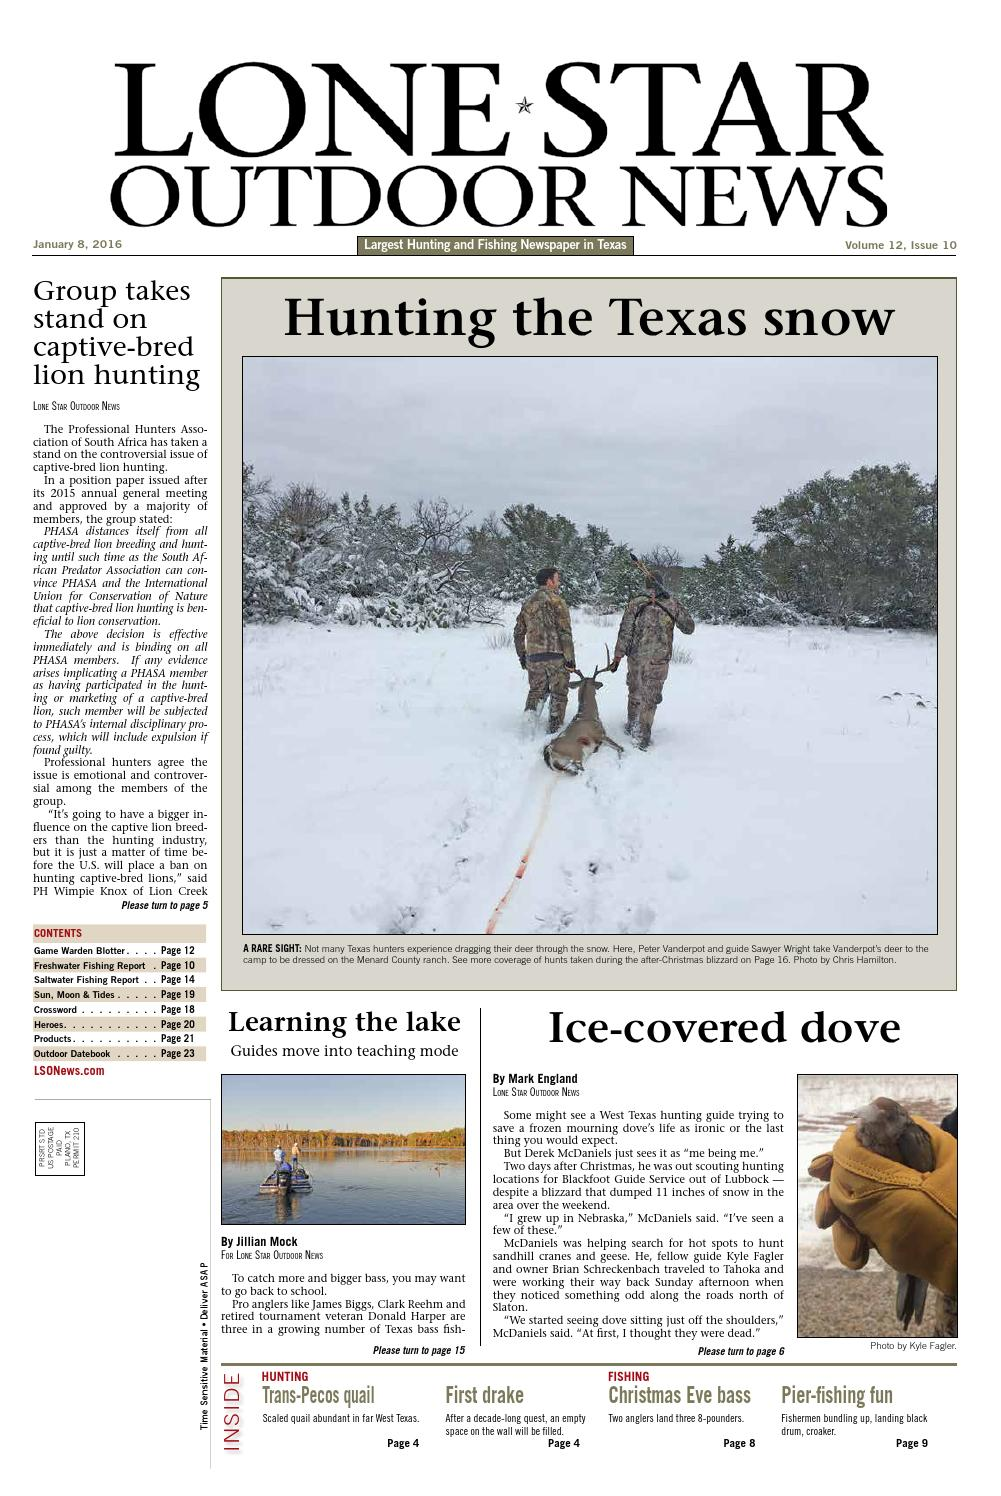 January 8, 2016 - Lone Star Outdoor News